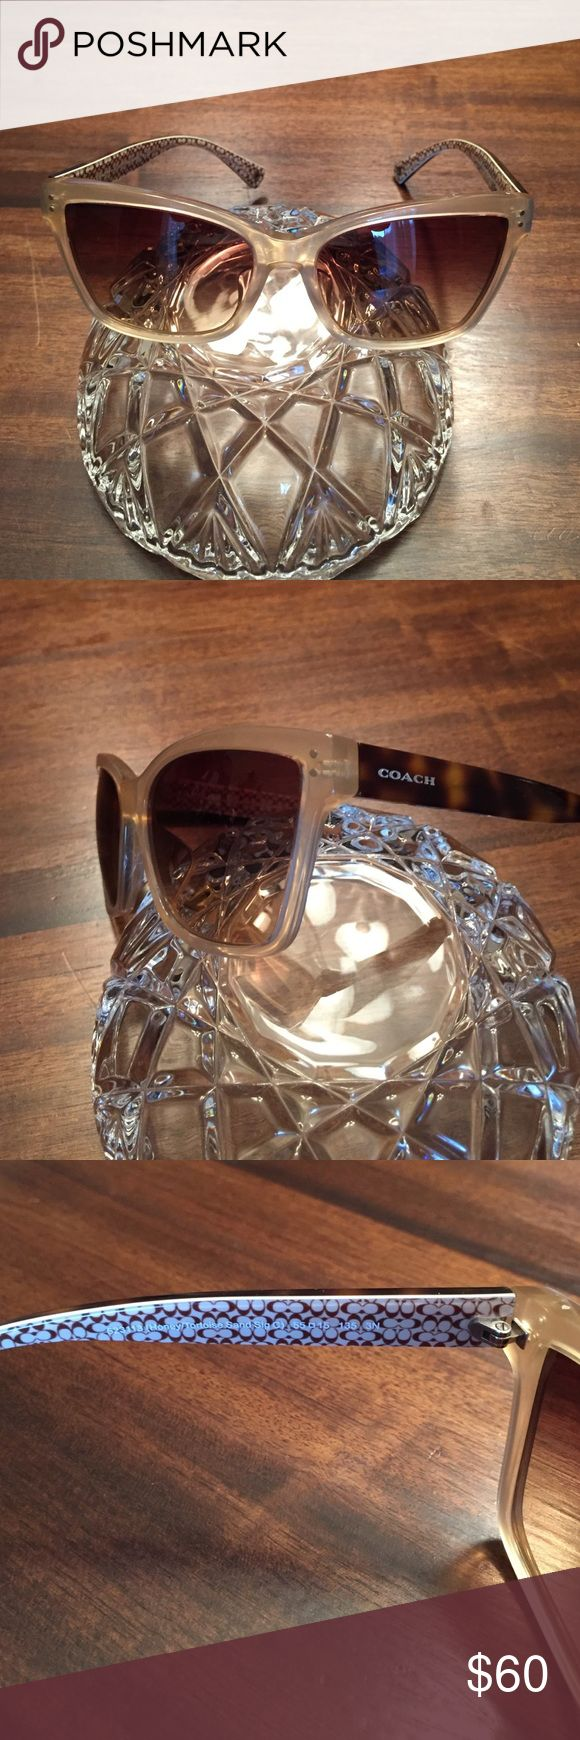 Authentic Coach sunglasses honey color Genuine coach sunglasses and a honey color slight cat eye shape.  These are in like new condition worn maybe once no case Coach Accessories Sunglasses